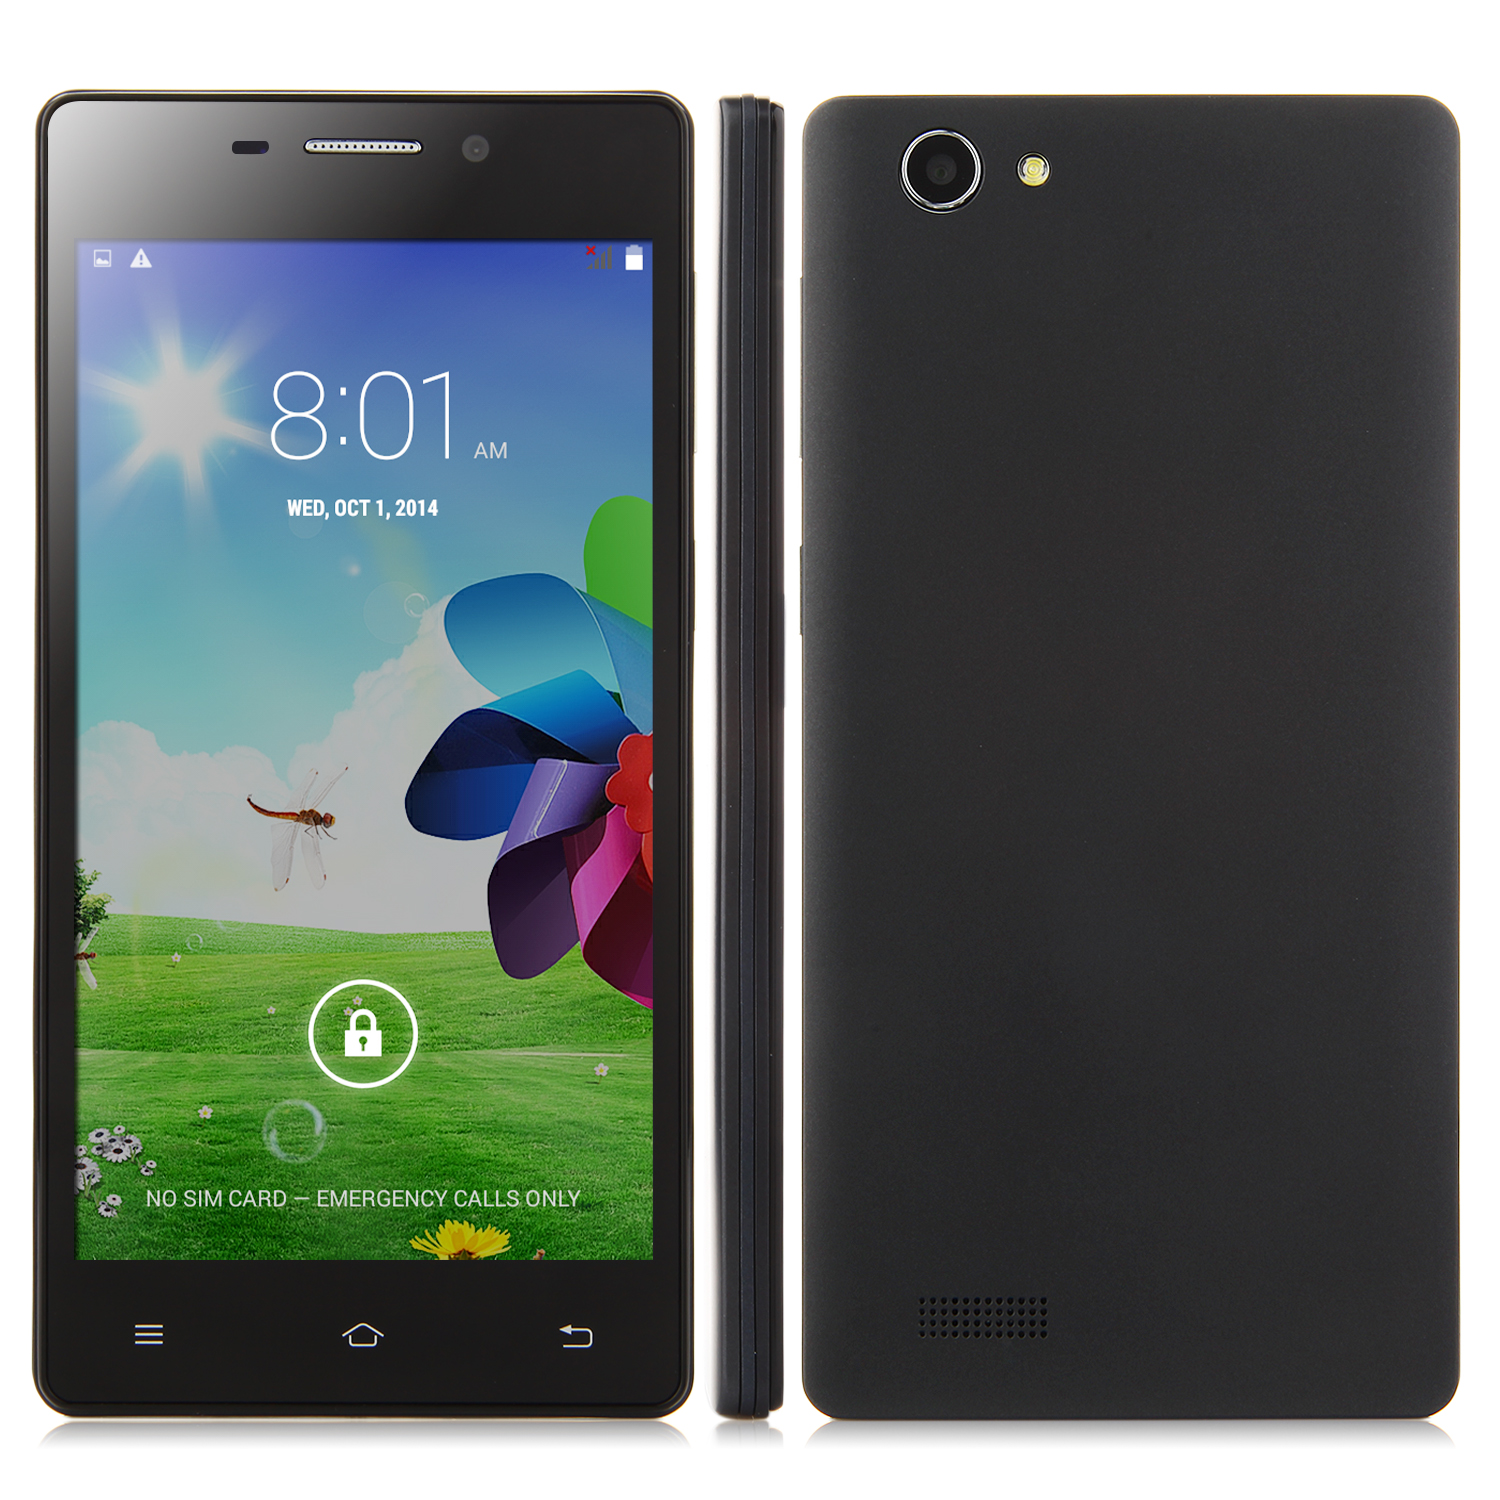 X2 Smartphone Android 4.4 MTK6572W 5.0 Inch QHD Screen Smart Wake Black